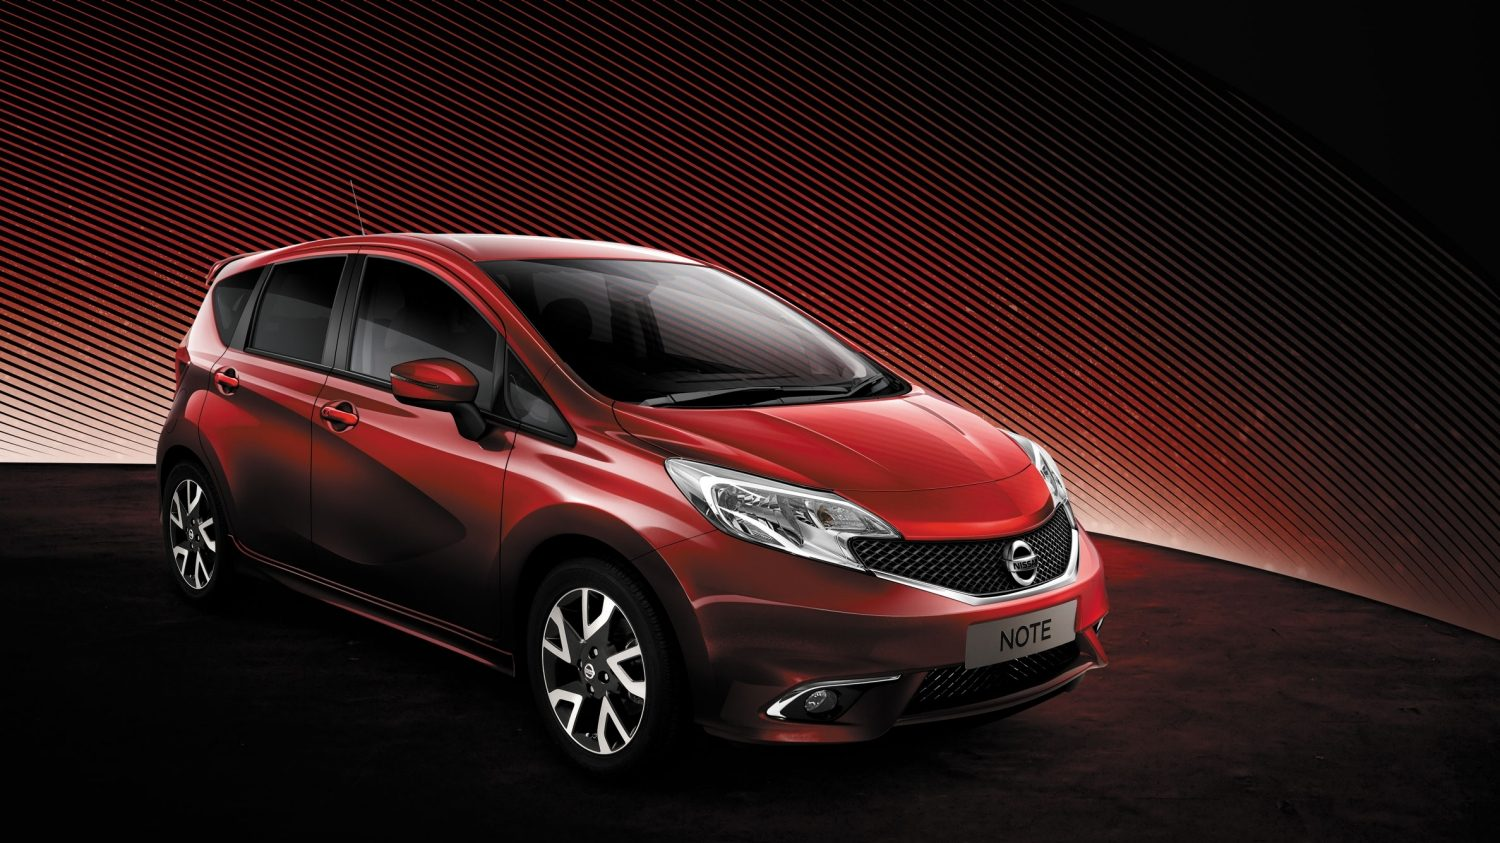 NISSAN NOTE Detroit Red – CREATIVE LINE